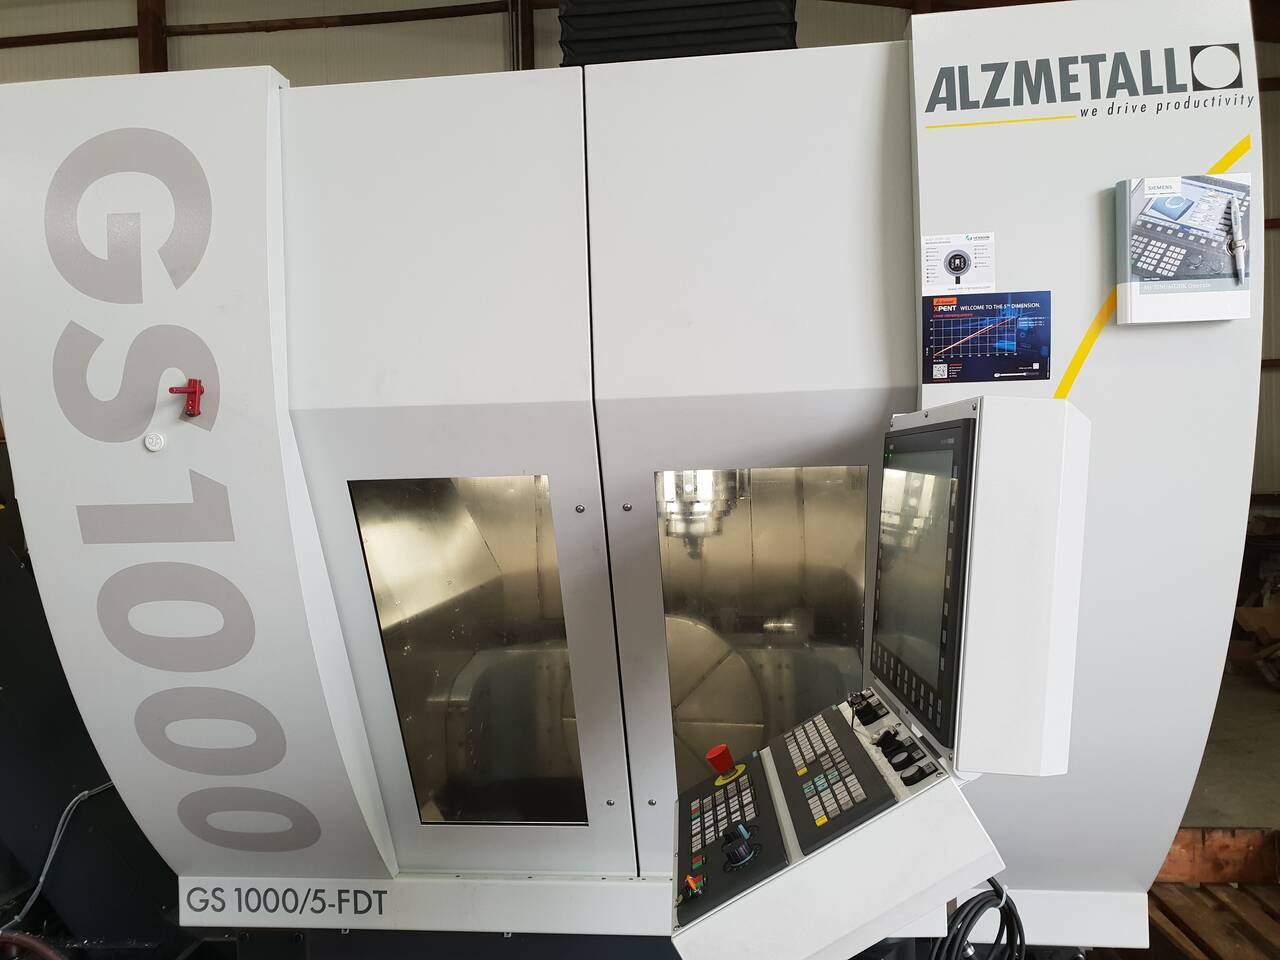 /media/04491ec0-0a42-4e01-b8cd-c068c0d83f25.jpg?w=1280 - GELDT CNC Technik